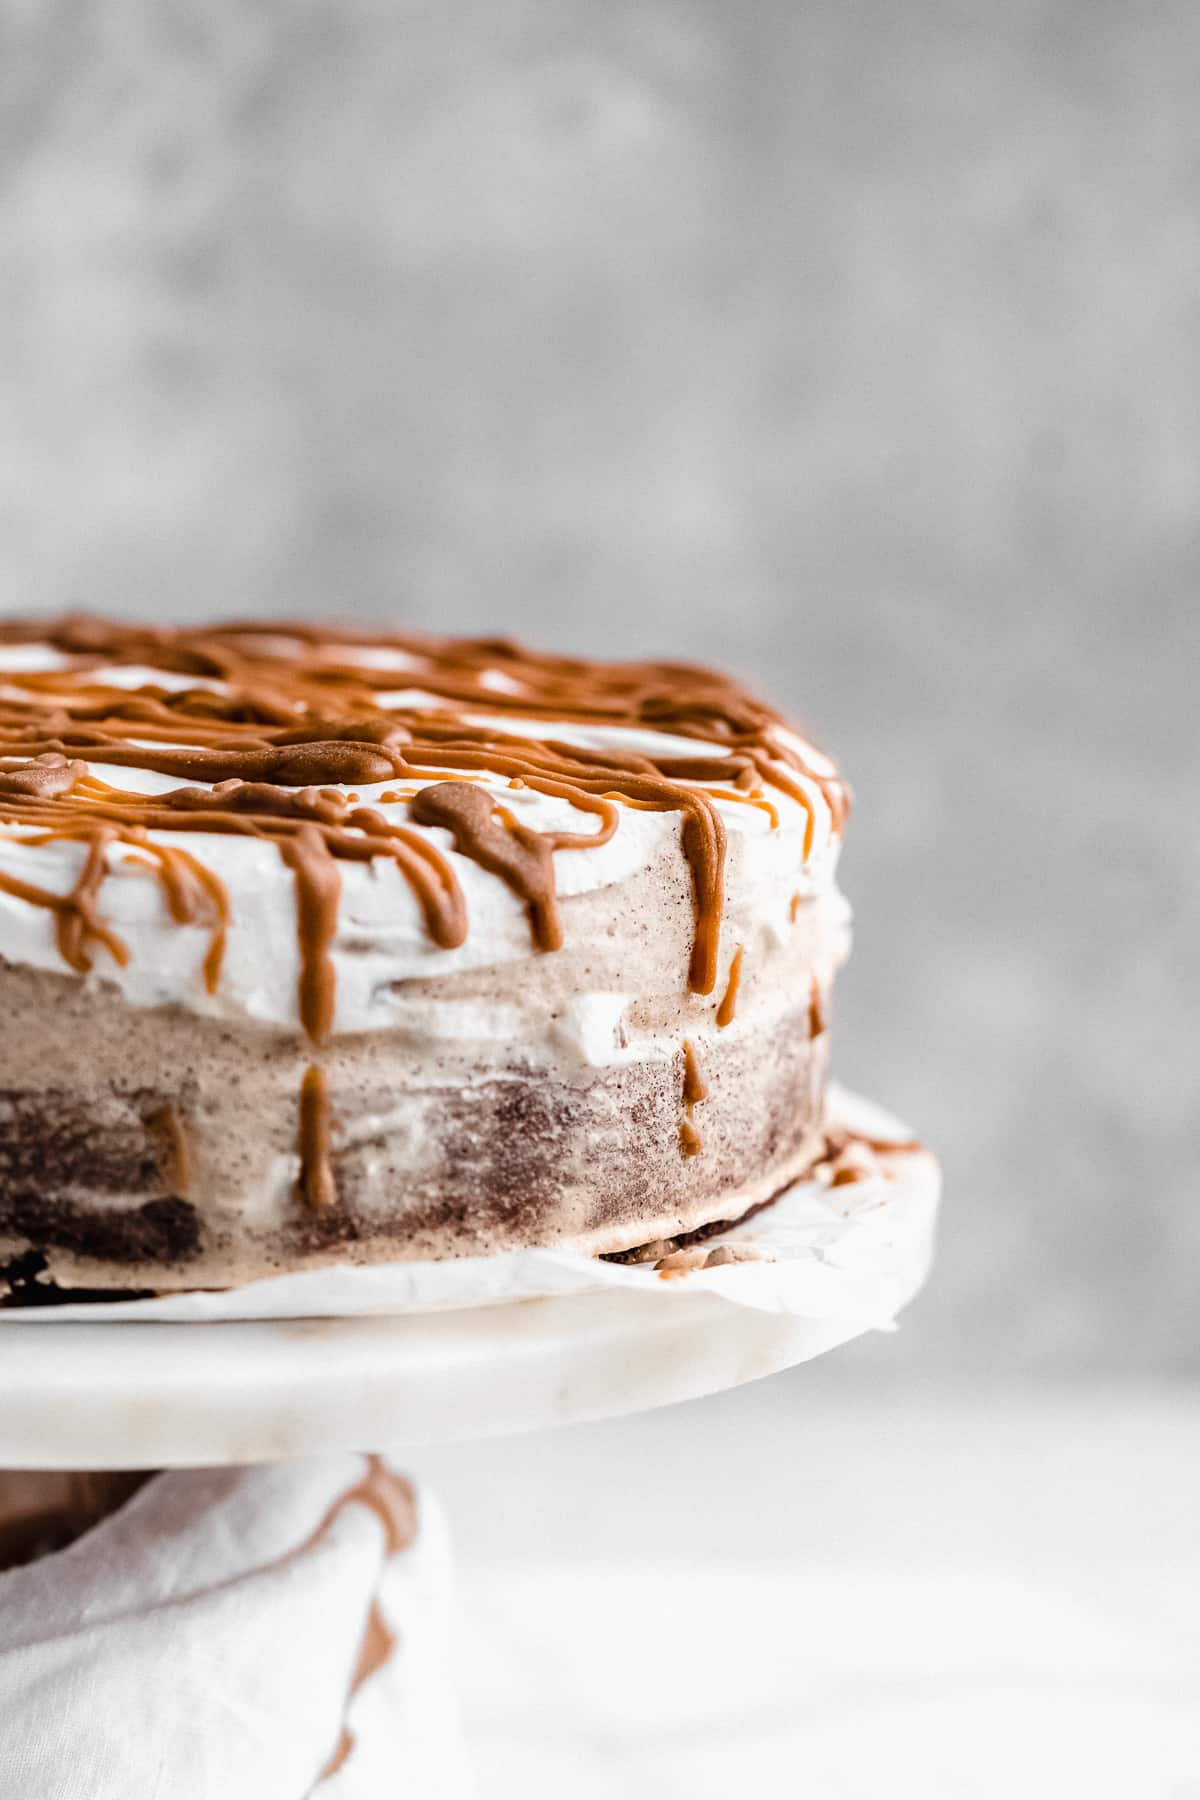 Closeup photo of the side of the Chocolate Espresso Gluten-free Ice Cream Cake sitting on a white marble cake plate.